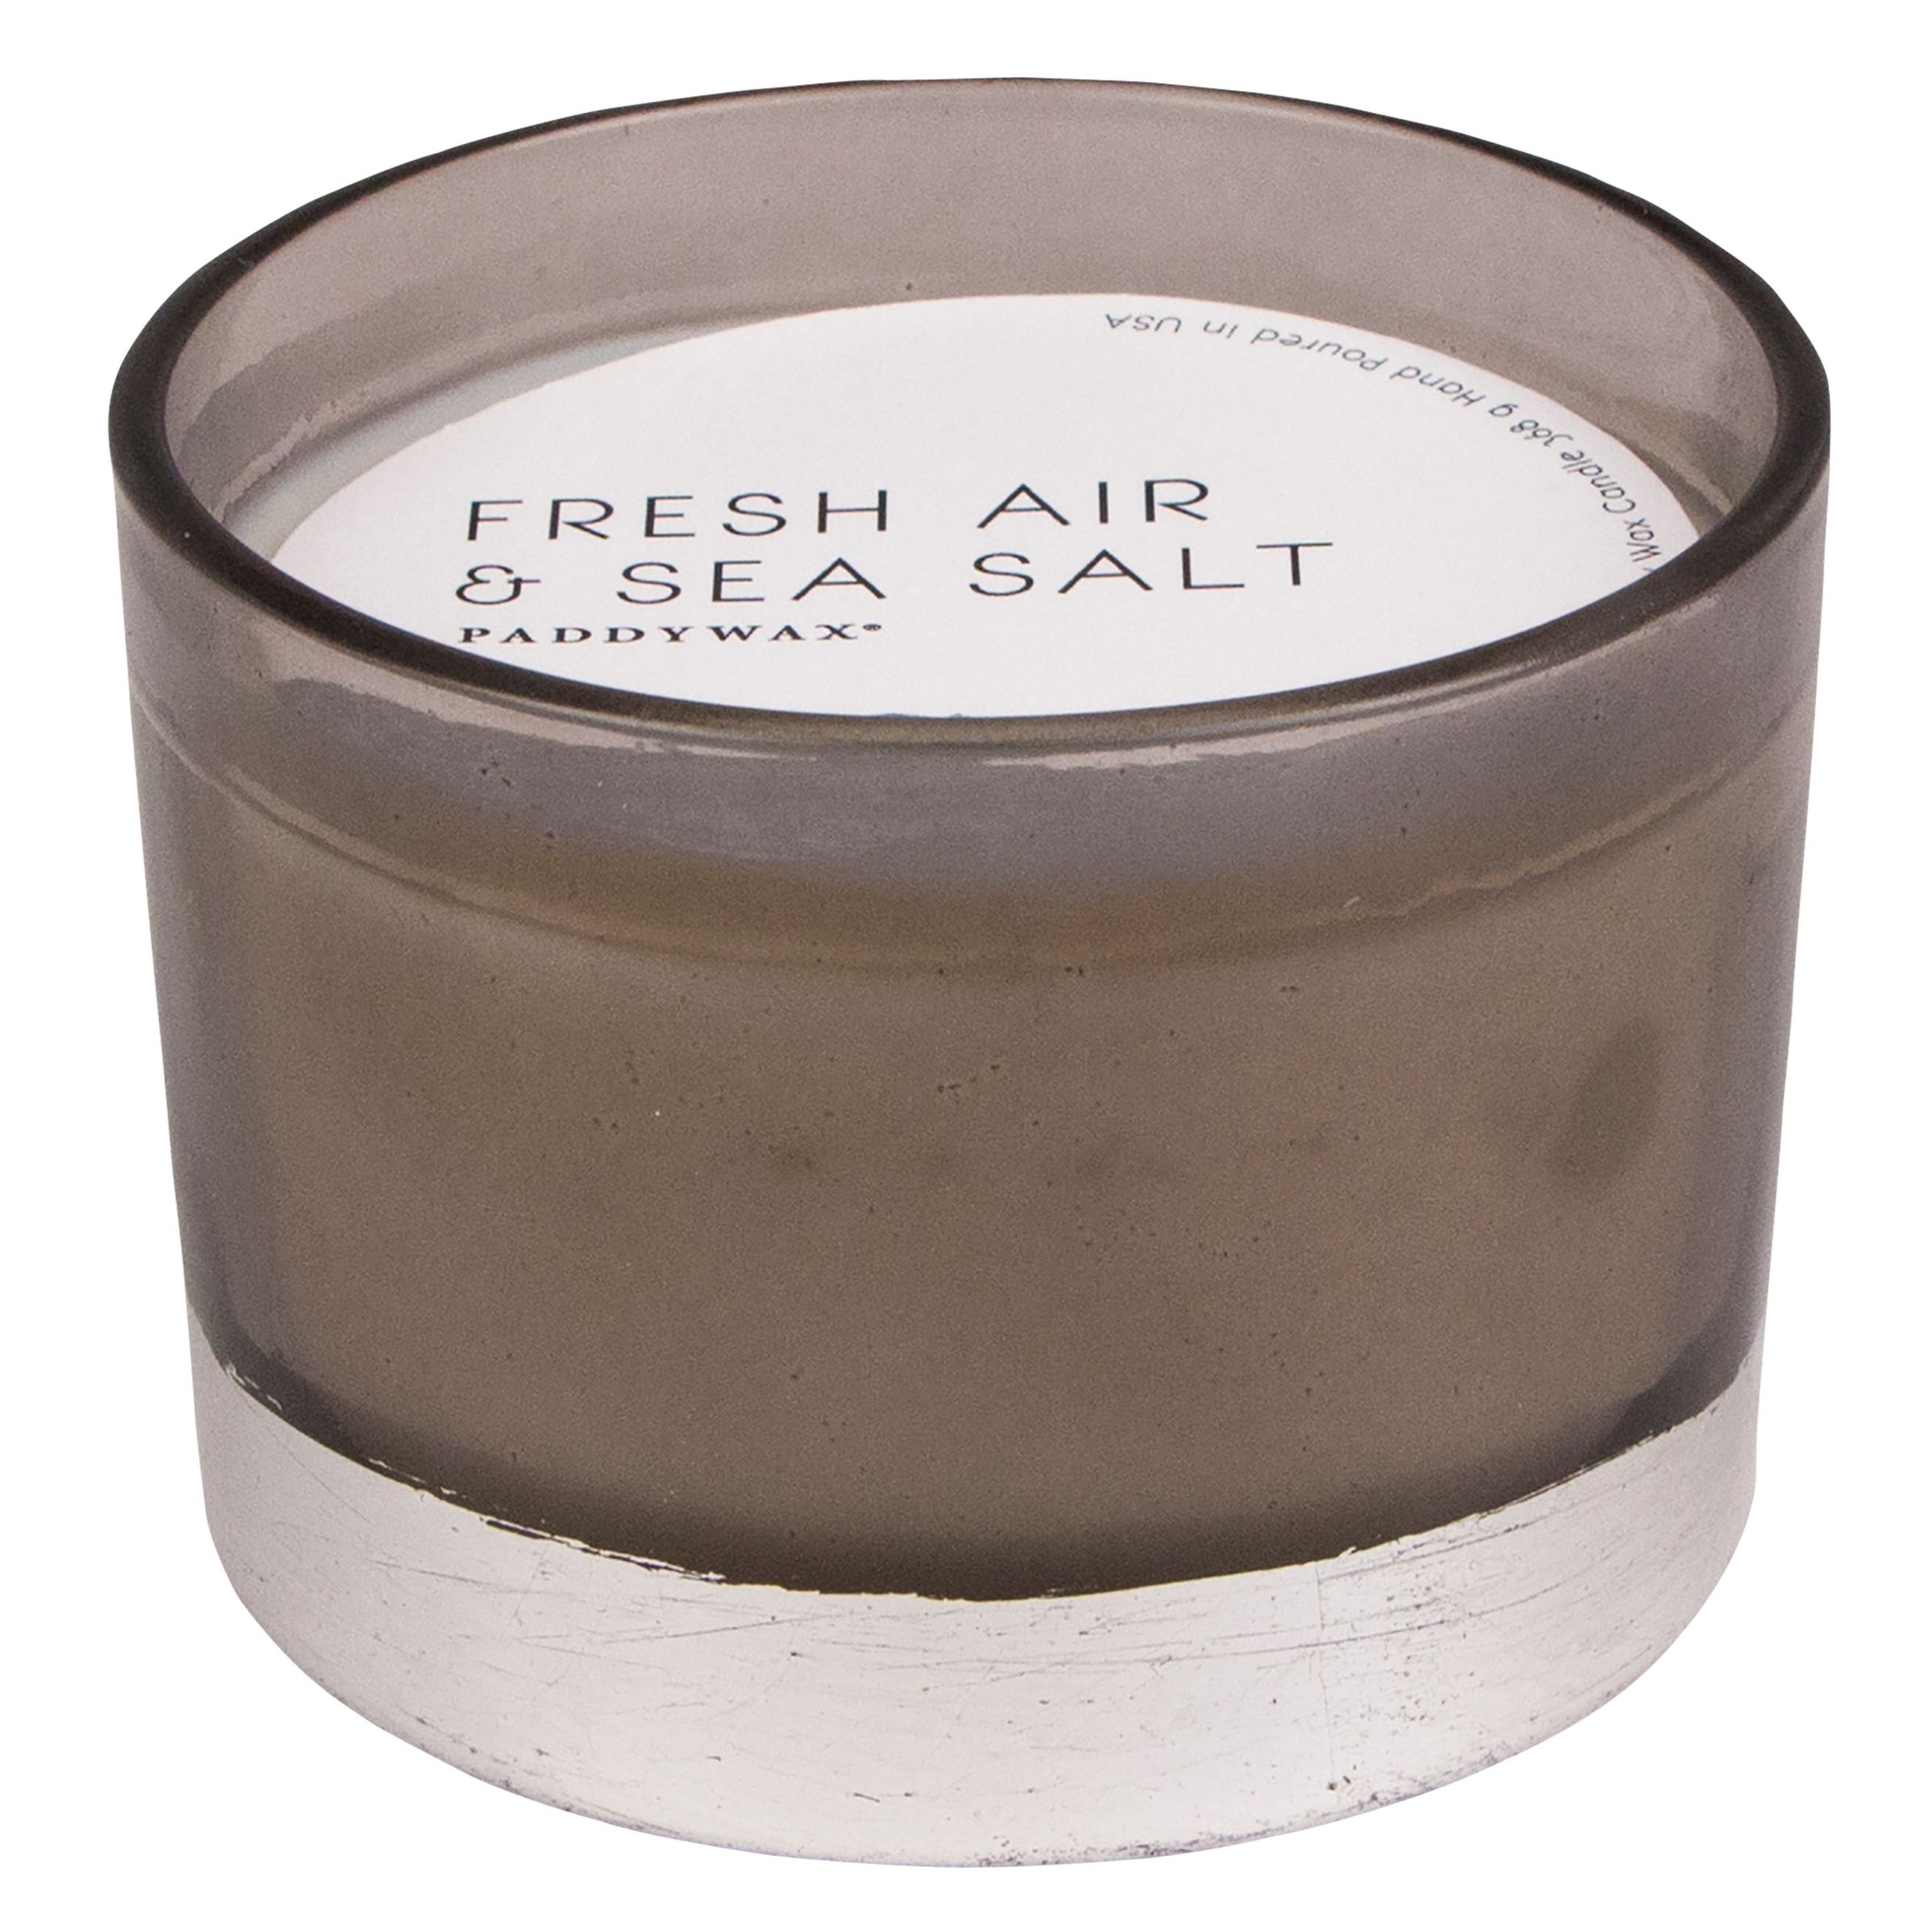 Paddywax Paddywax Gilt Air Sea Salt 3 Wick Scented Candle